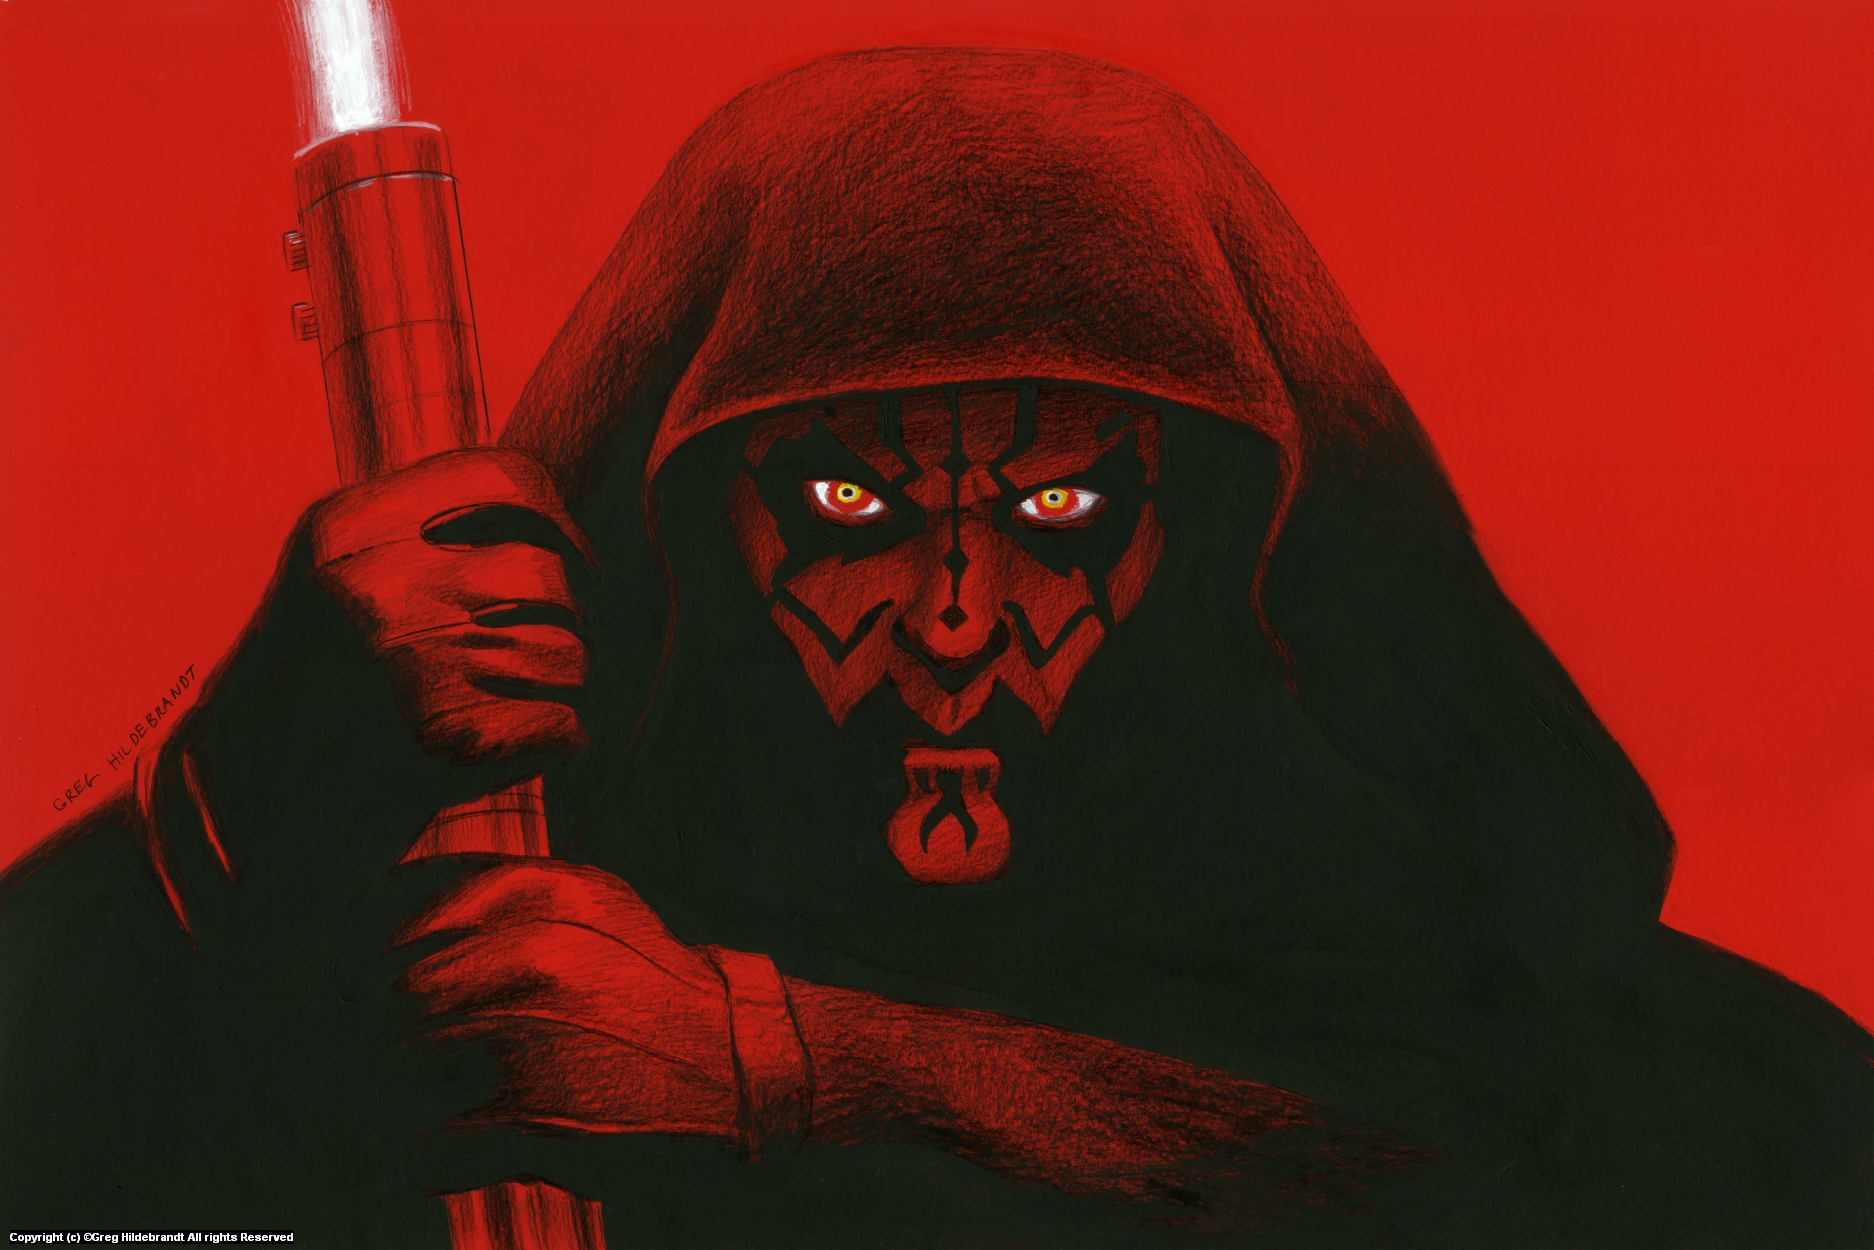 Darth Maul - Version 2 Artwork by Greg Hildebrandt